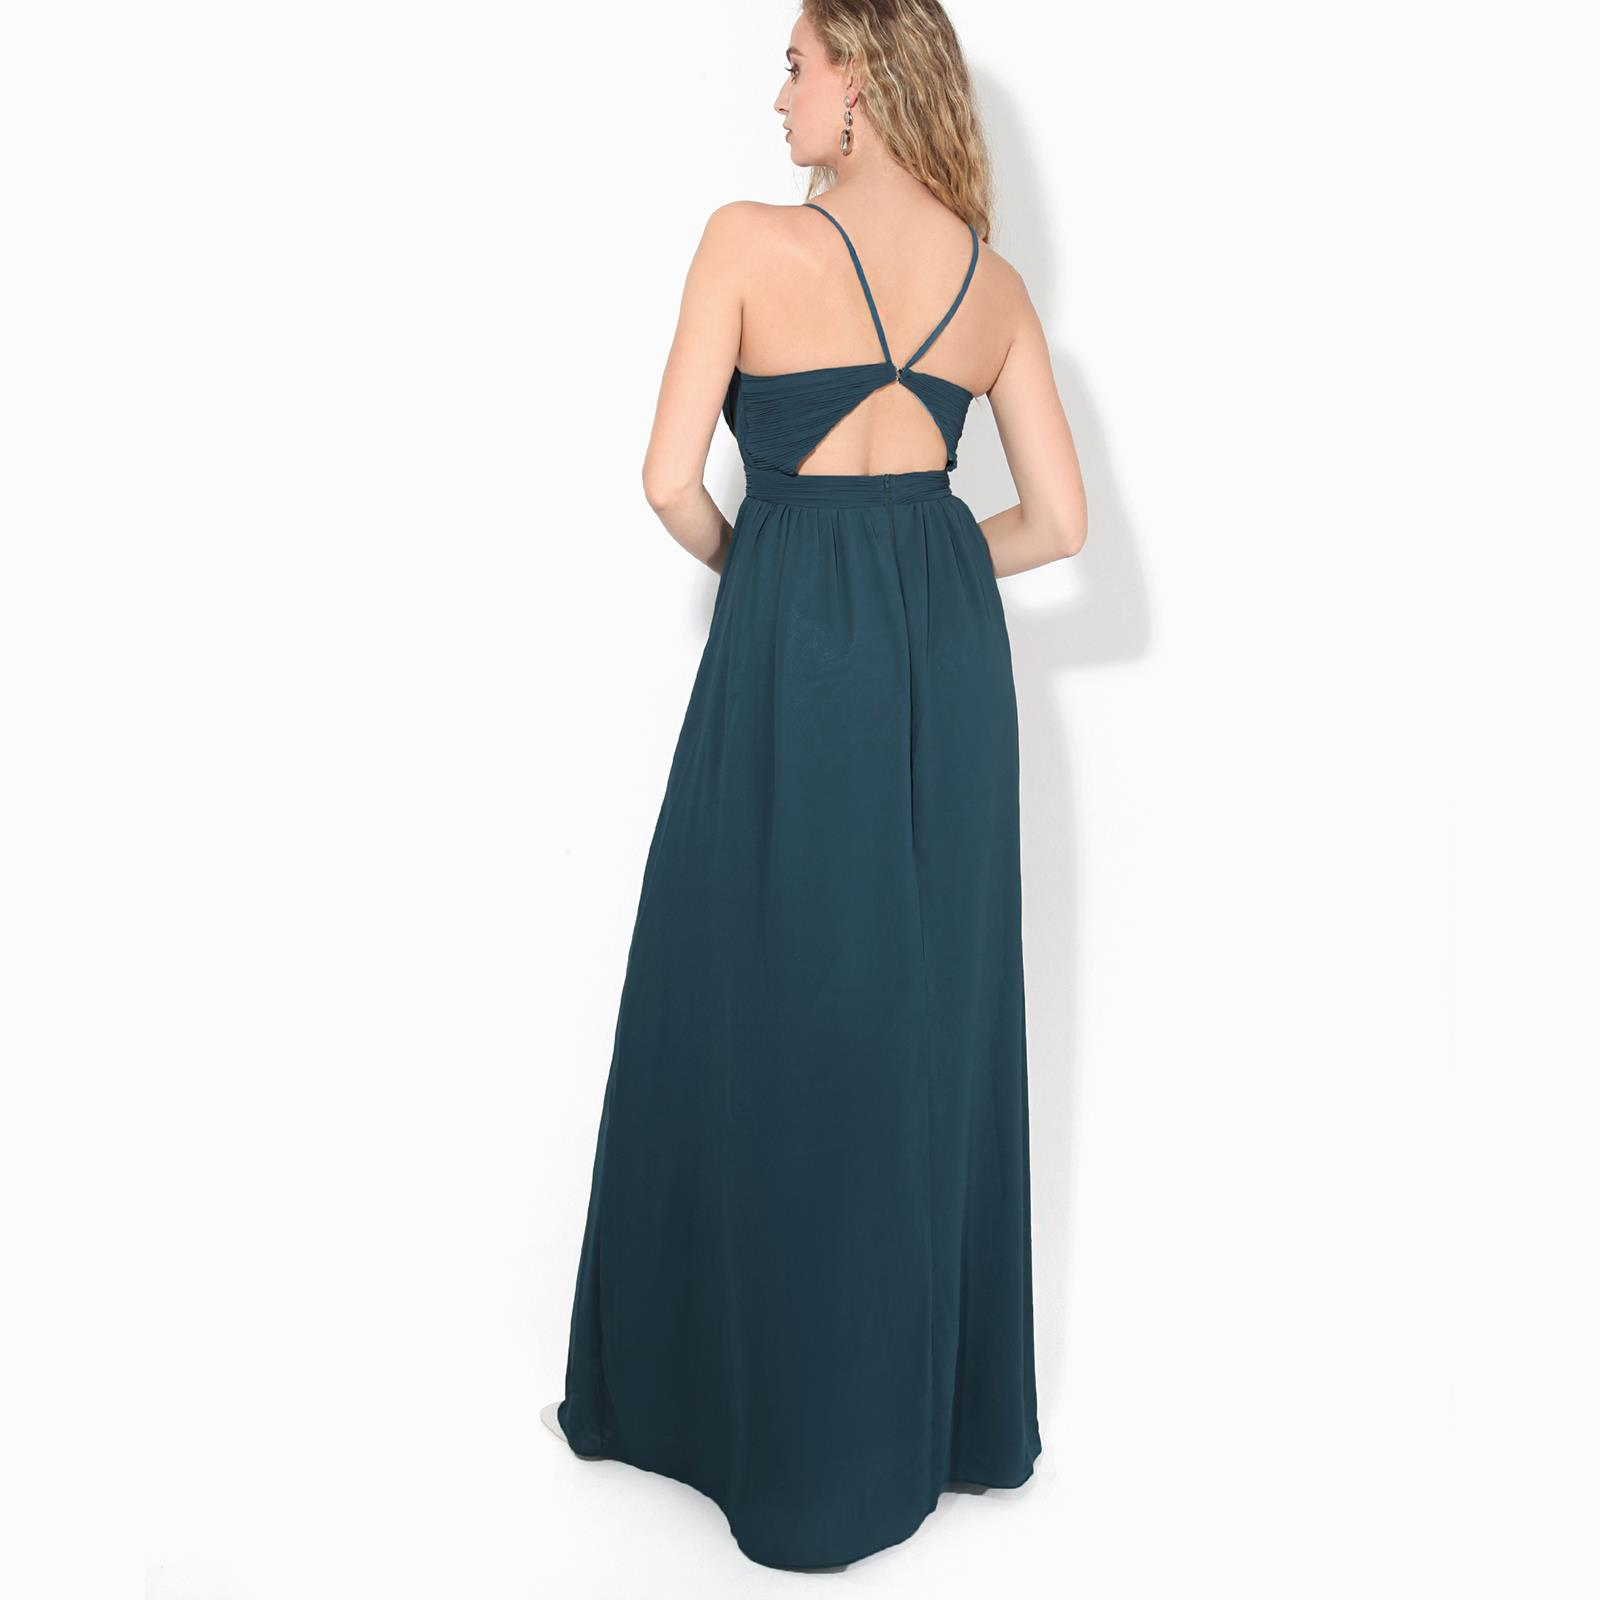 Womens-Ladies-Strappy-Maxi-Dress-Formal-Wedding-Evening-Party-Ball-Gown-Cocktail thumbnail 13